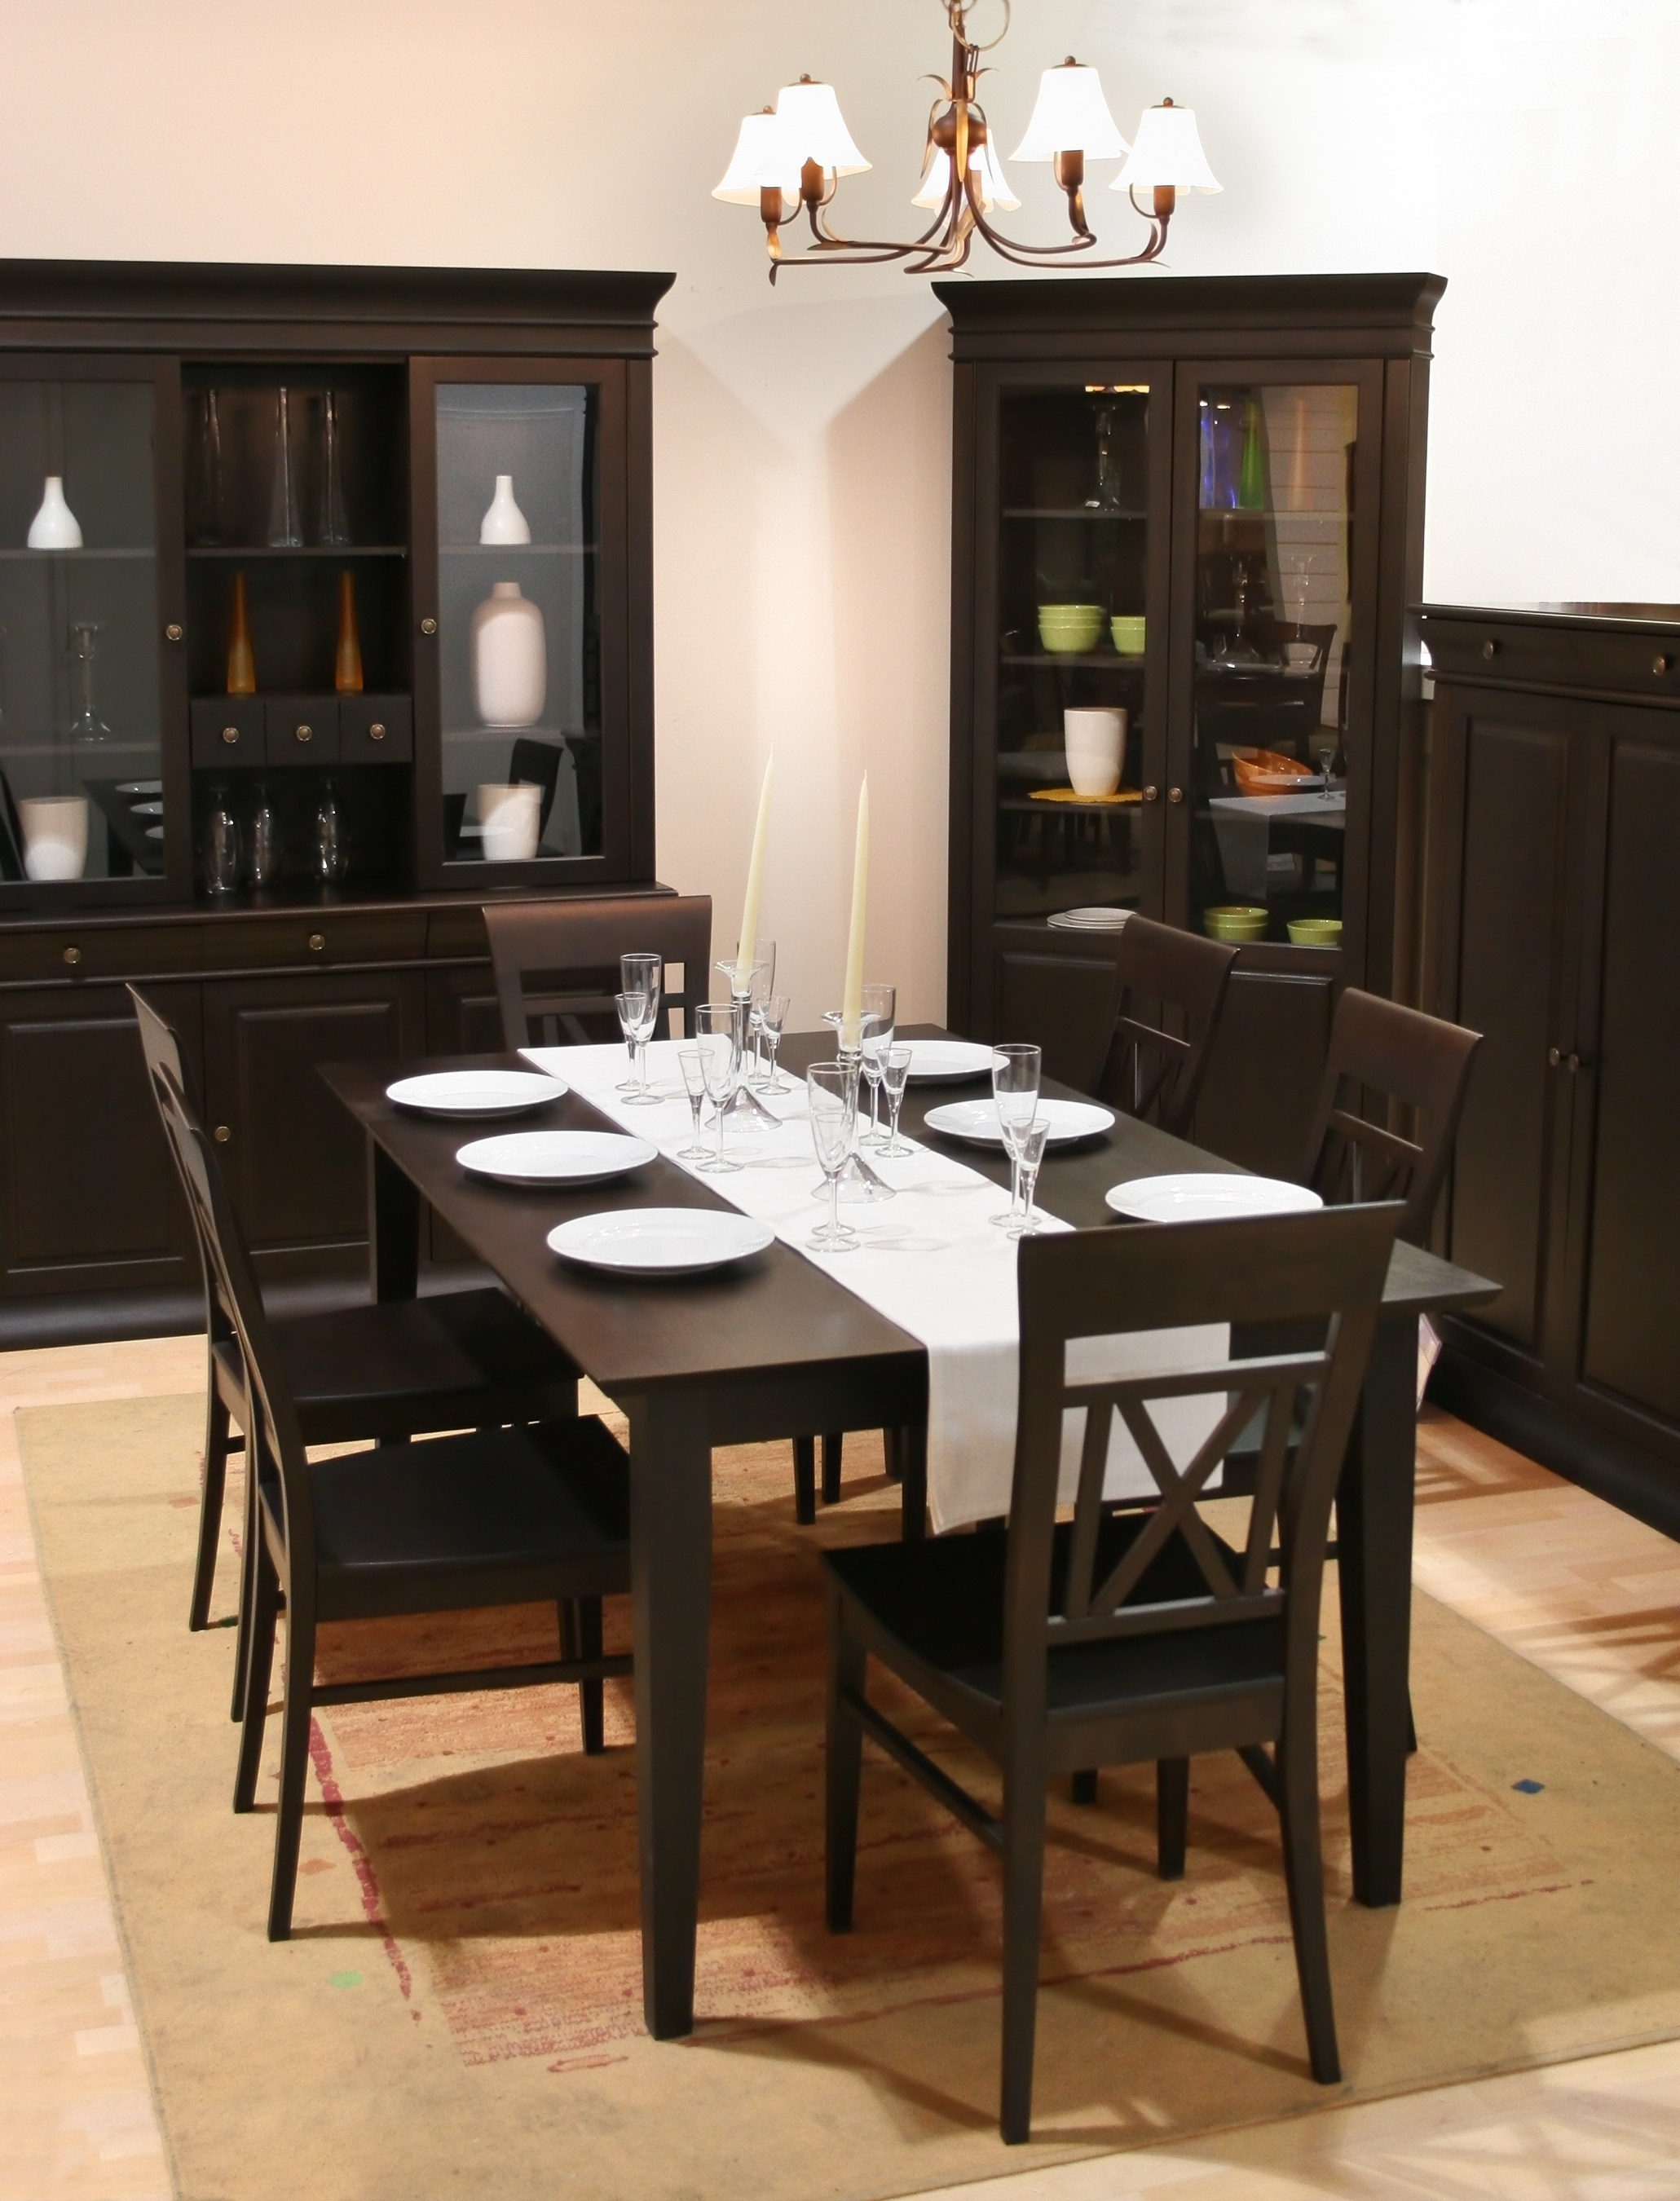 Donate Furniture Frisco Tx, Where Can I Donate A Dining Room Table